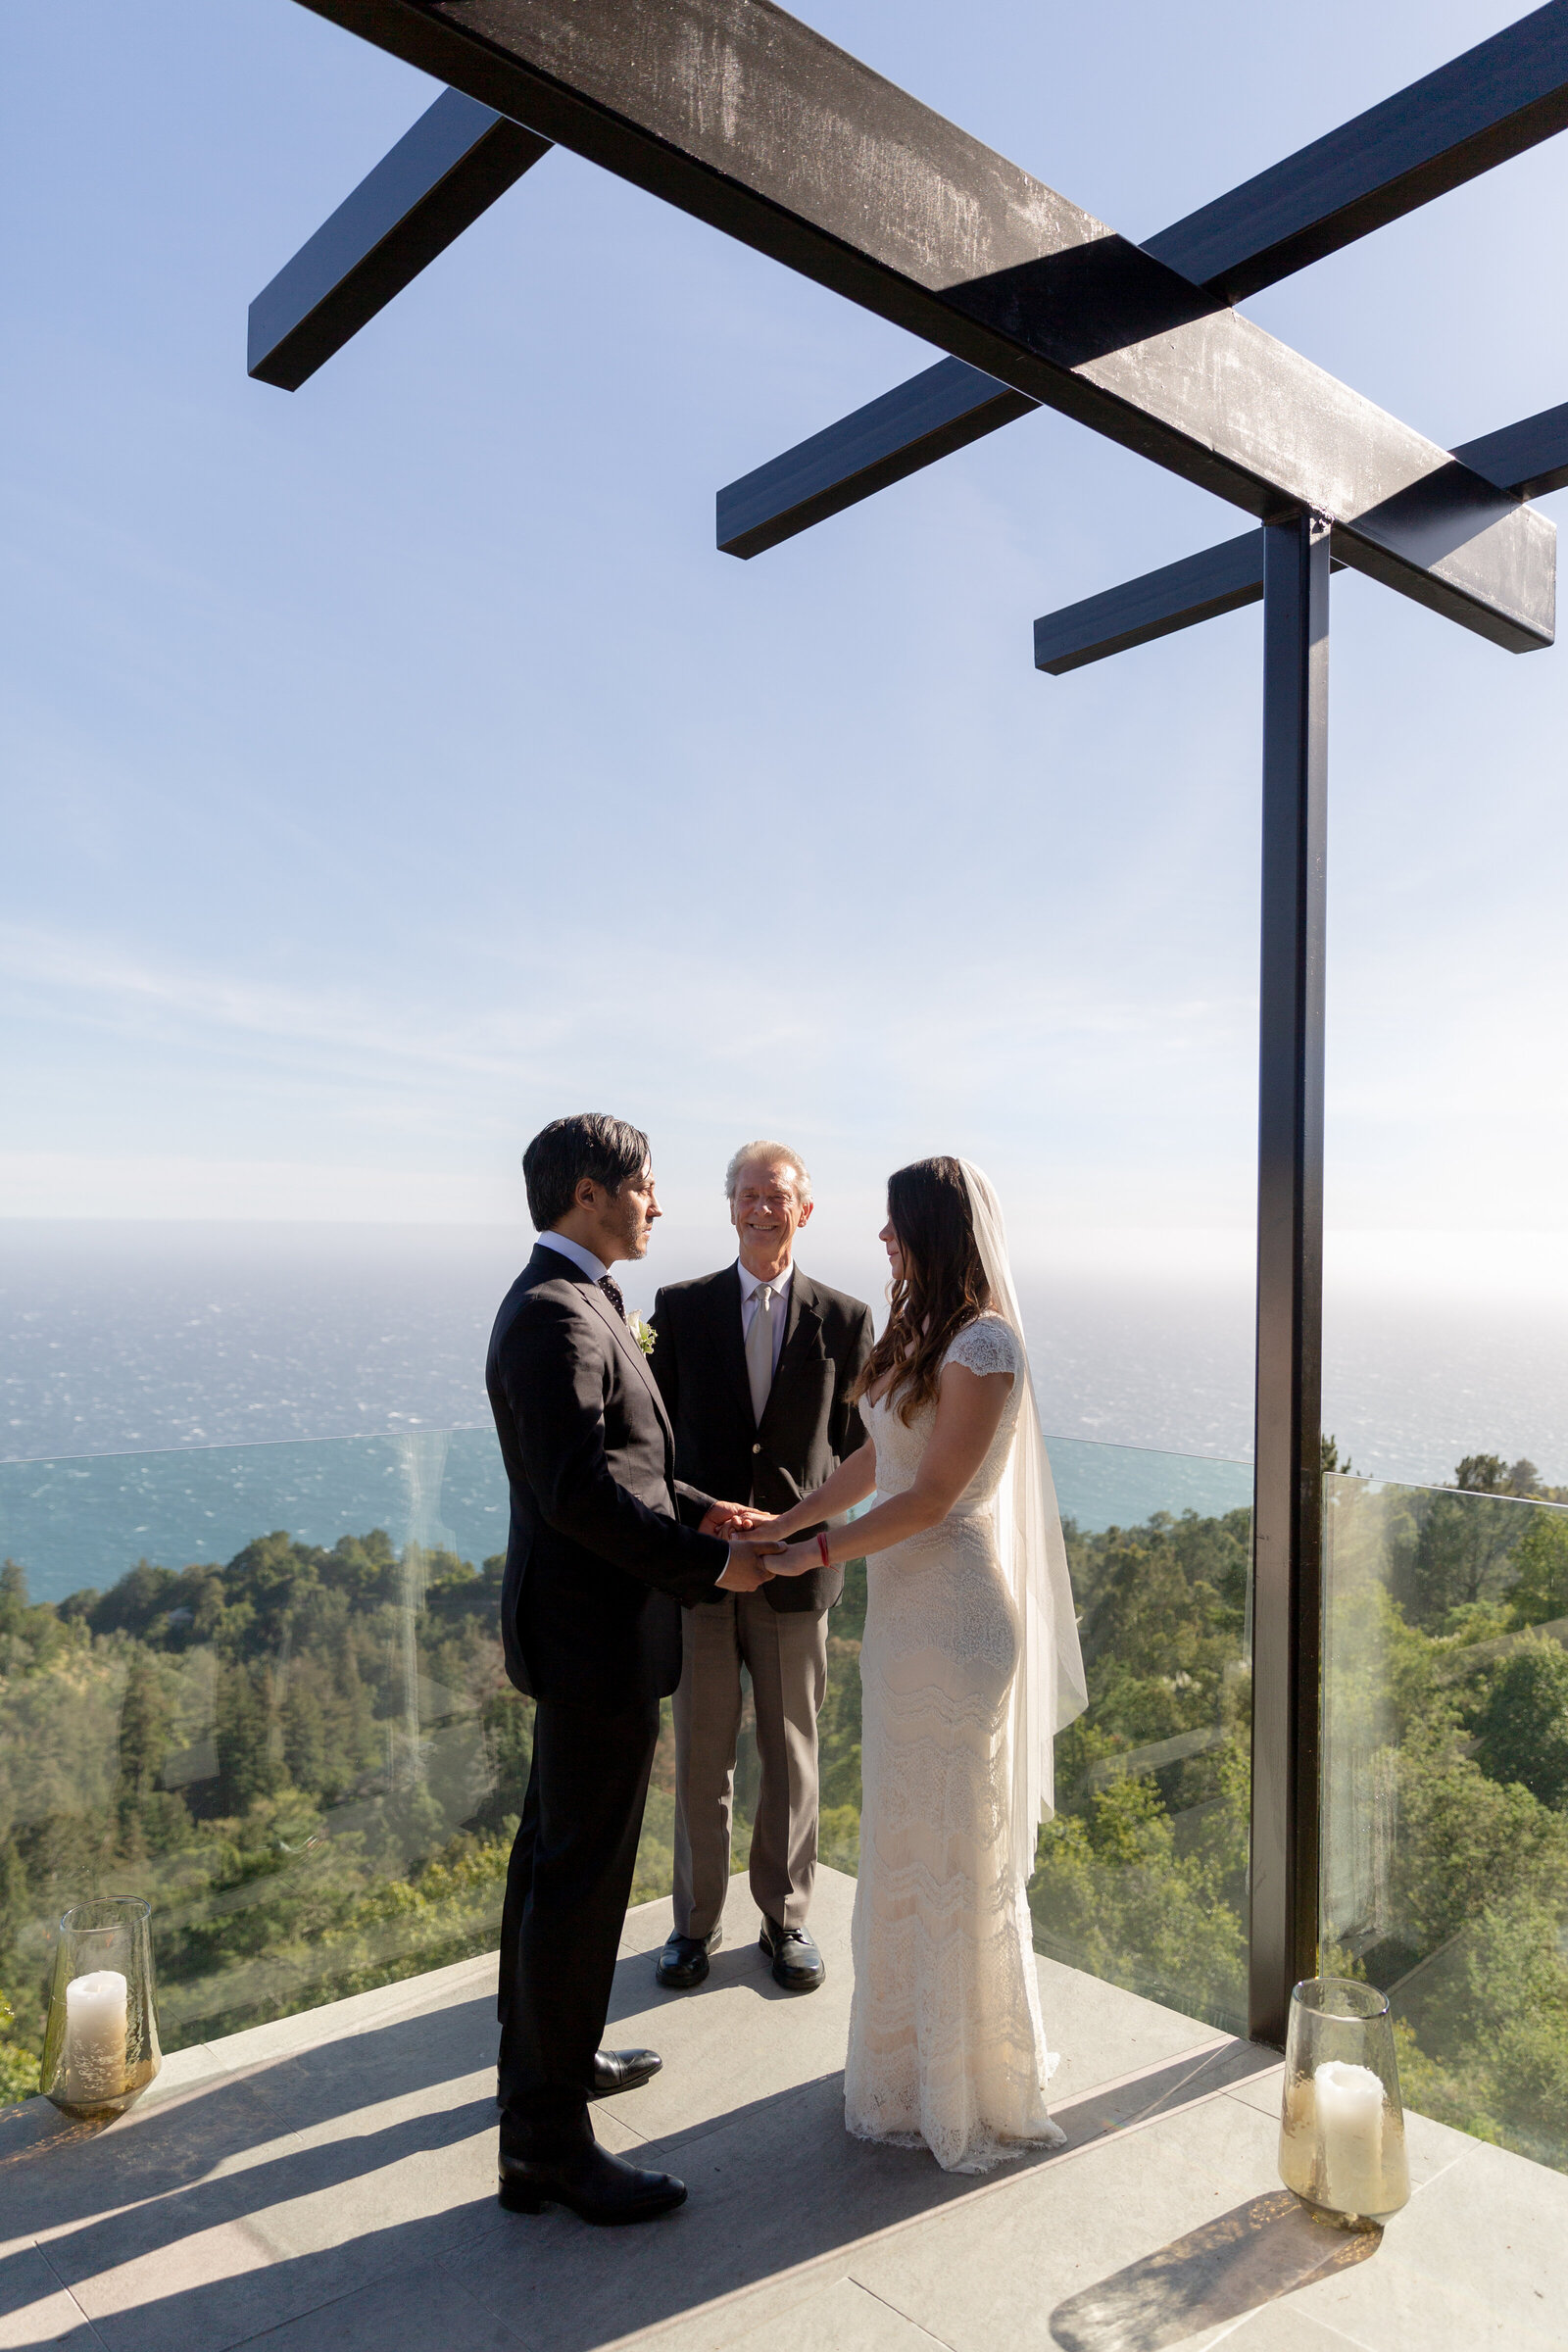 larissa-cleveland-elope-eleopement-intimate-wedding-photographer-san-francisco-napa-carmel-013